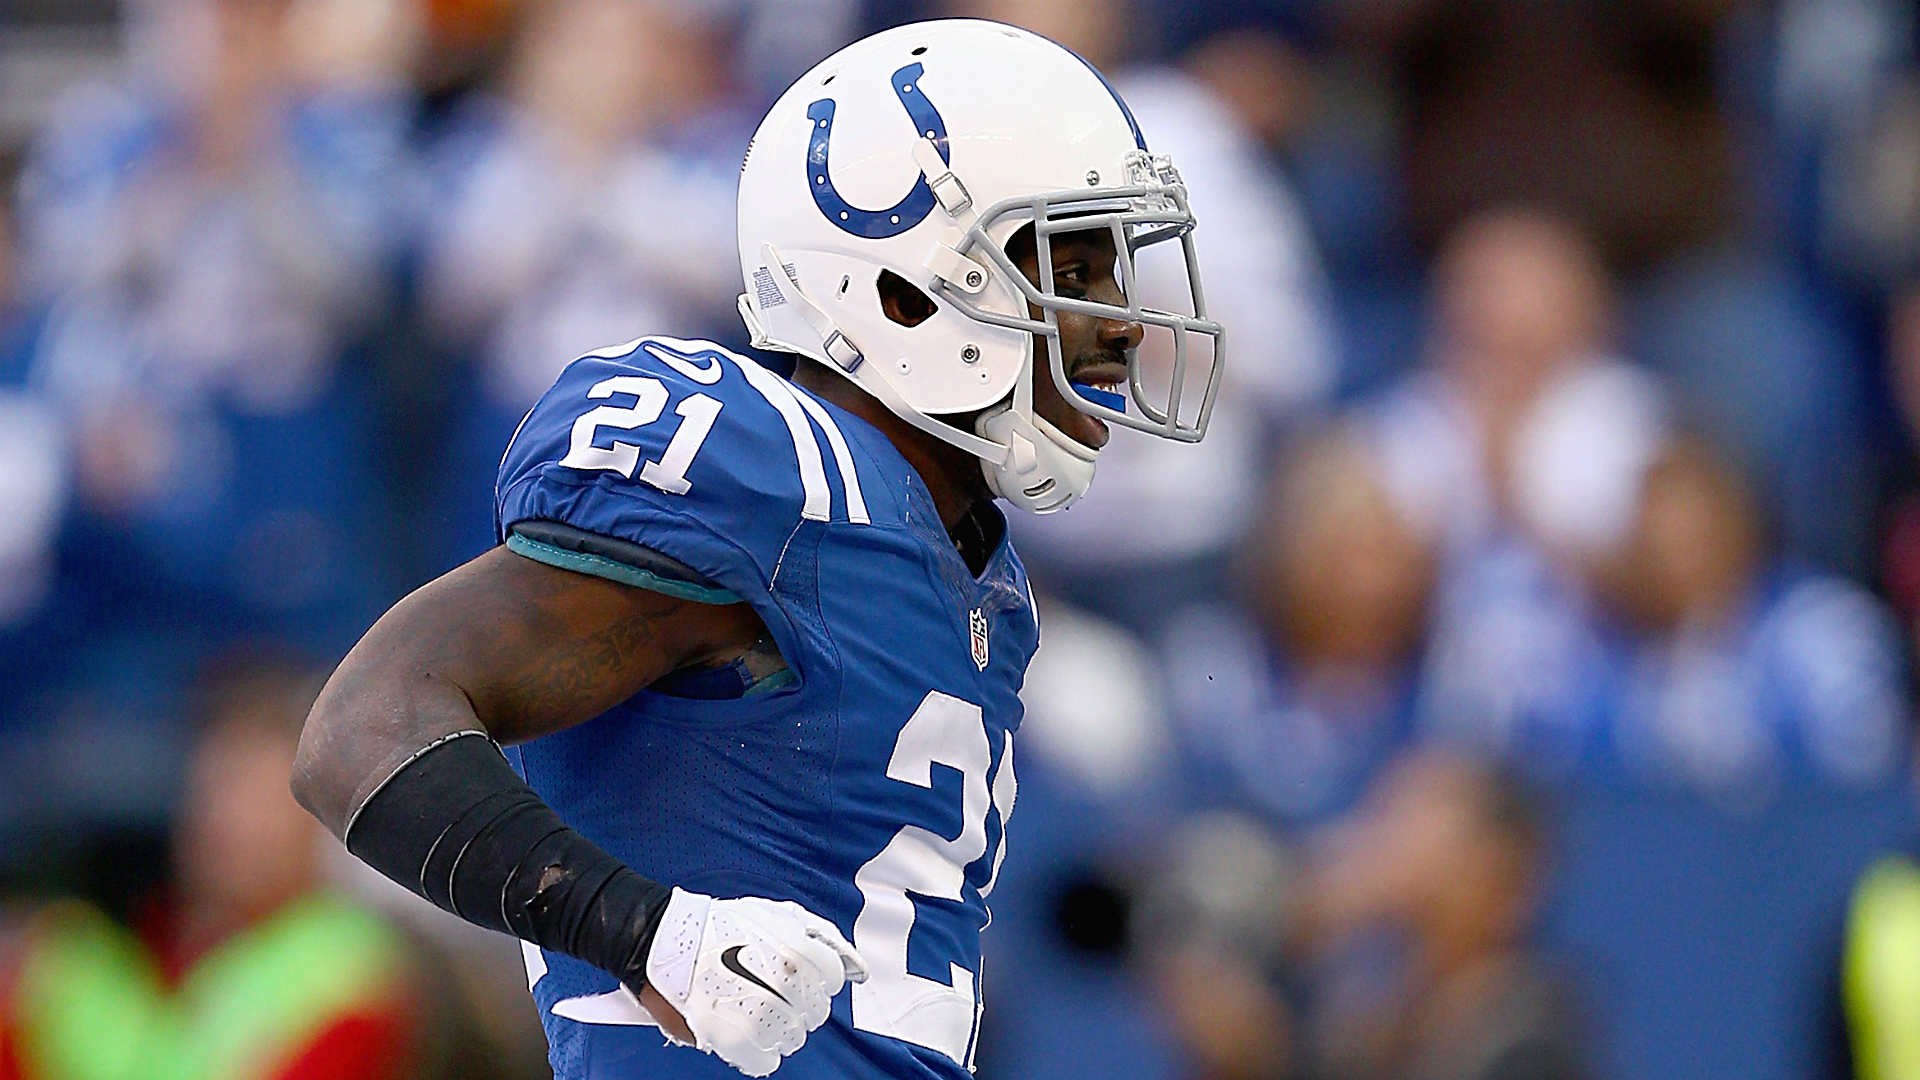 Vontae-Davis-092115-USNews-Getty-FTR